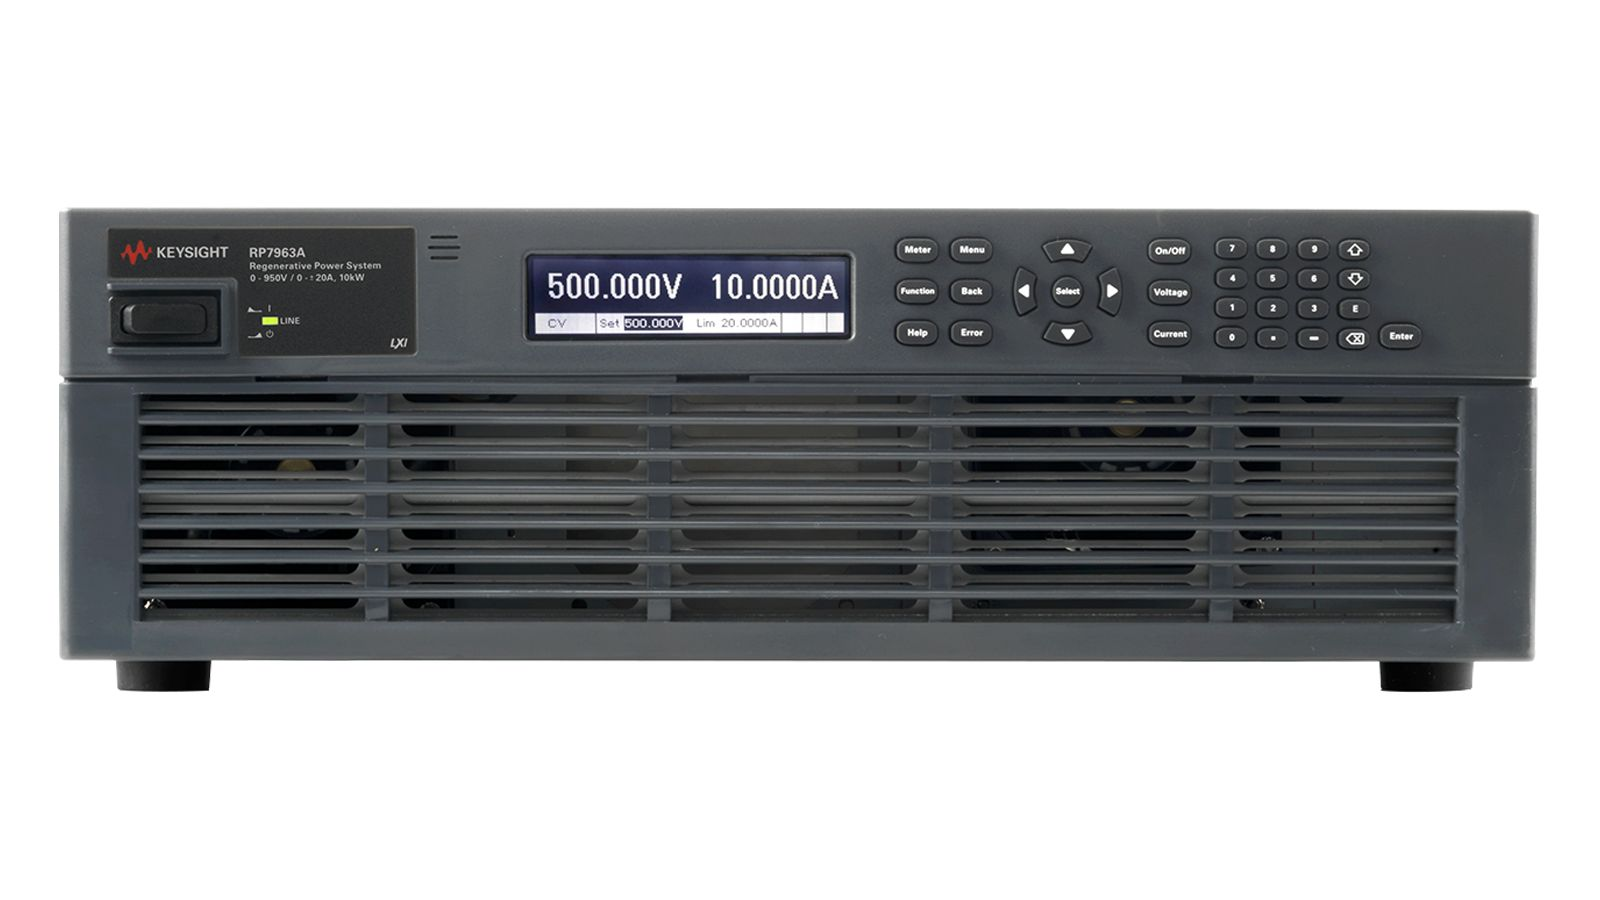 RP7900 Series Regenerative Power Supplies